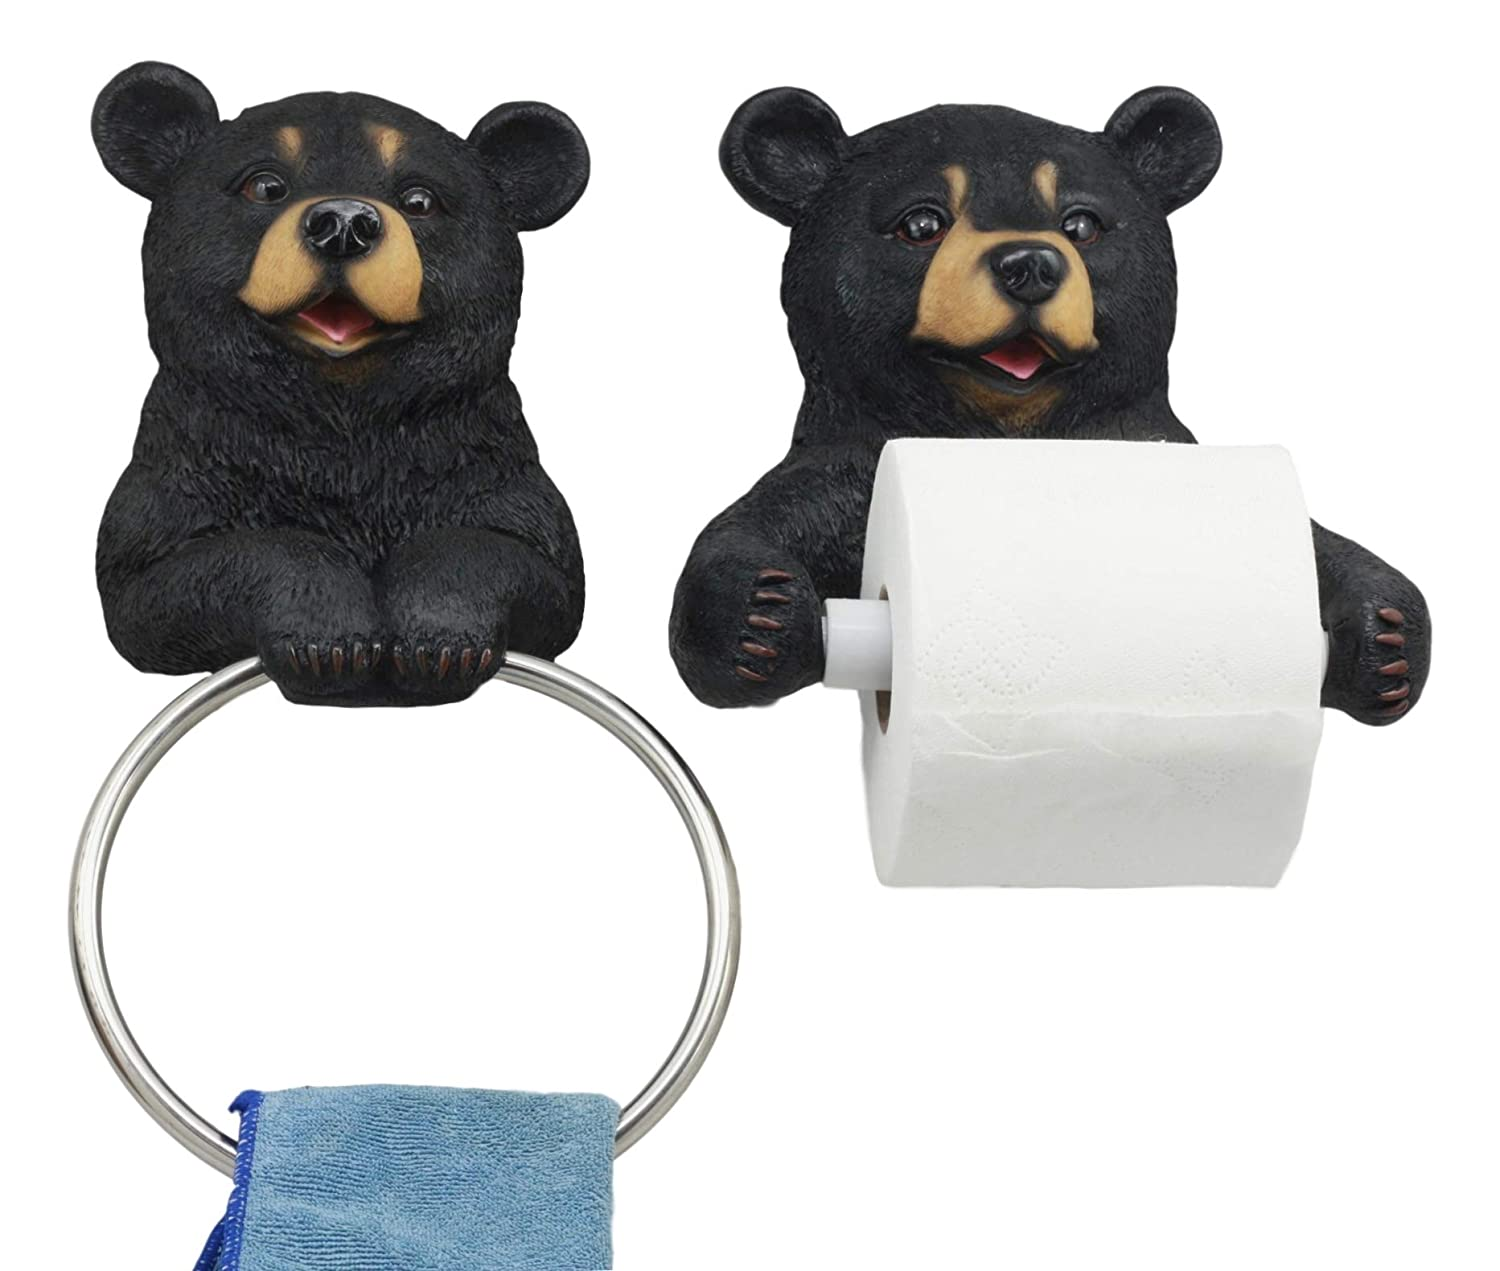 Darling Black Bear Toilet Paper and Hand Towel Holder Bathroom Wall Decoration Sculpture for Cozy Cabin and Hunting Lodge Decor Matching Figurine Set Gifts & Decors